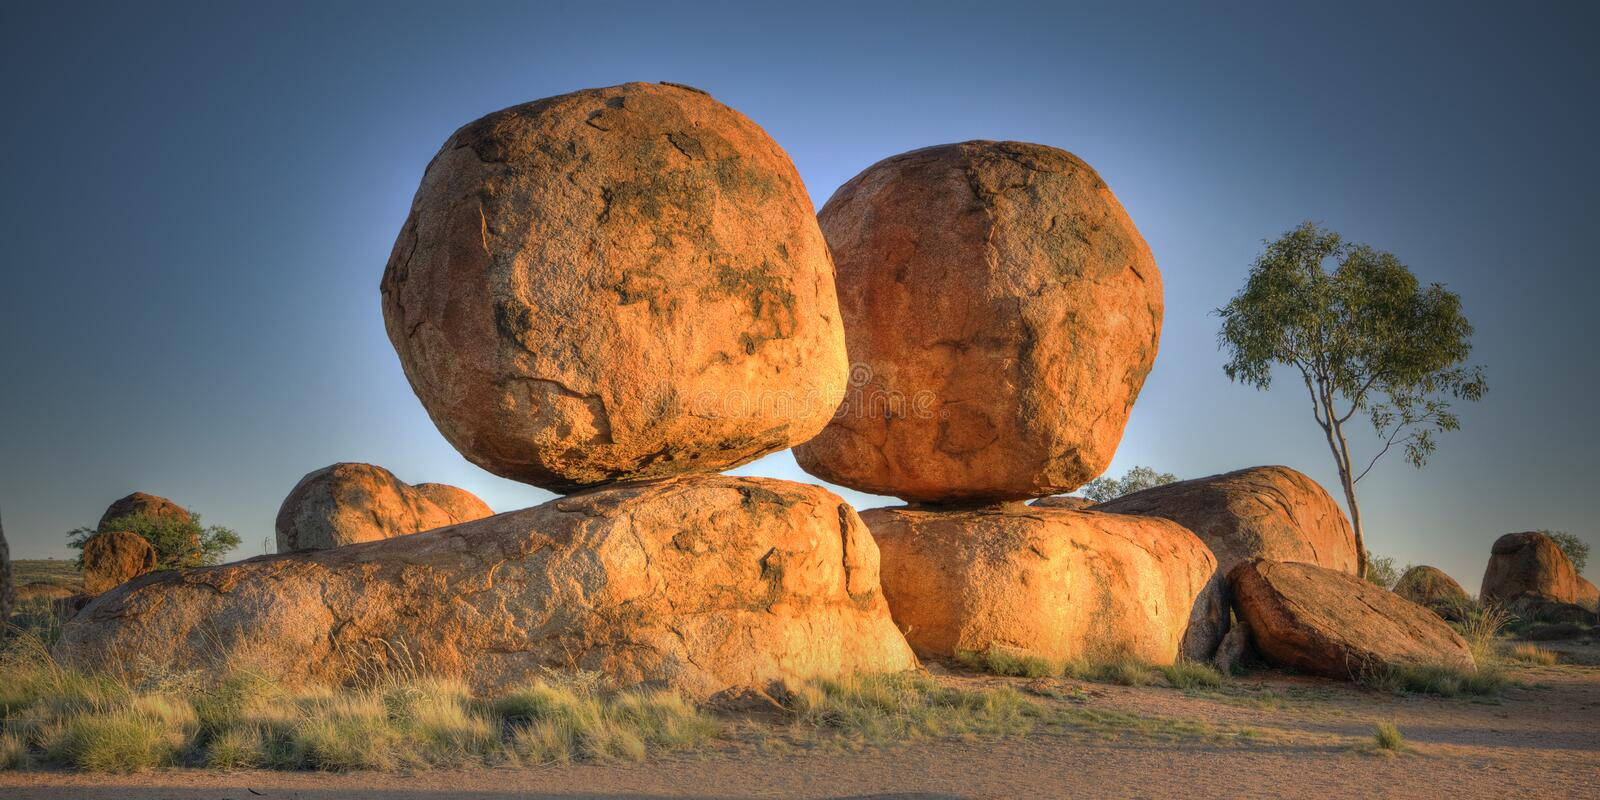 The Devils Marbles (Karlu Karlu), Northern Territory, Australia. The Devils Marbles are huge granite boulders scattered across a wide, shallow valley, 100 stock photos